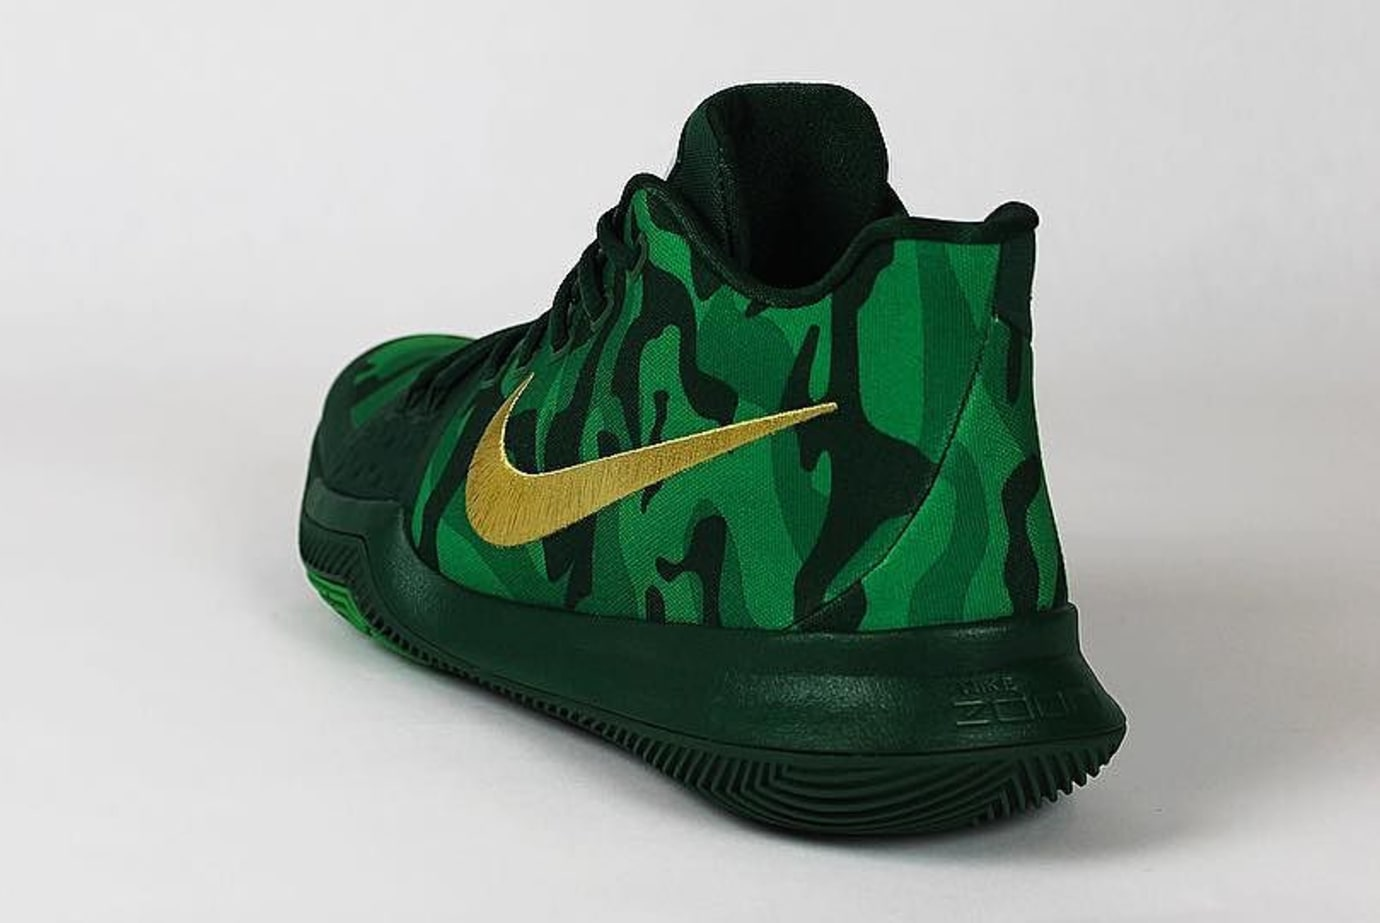 timeless design 54894 6aef1 Kyrie Irving Nike Kyrie 3 Green Camo Best Buddies PE Heel